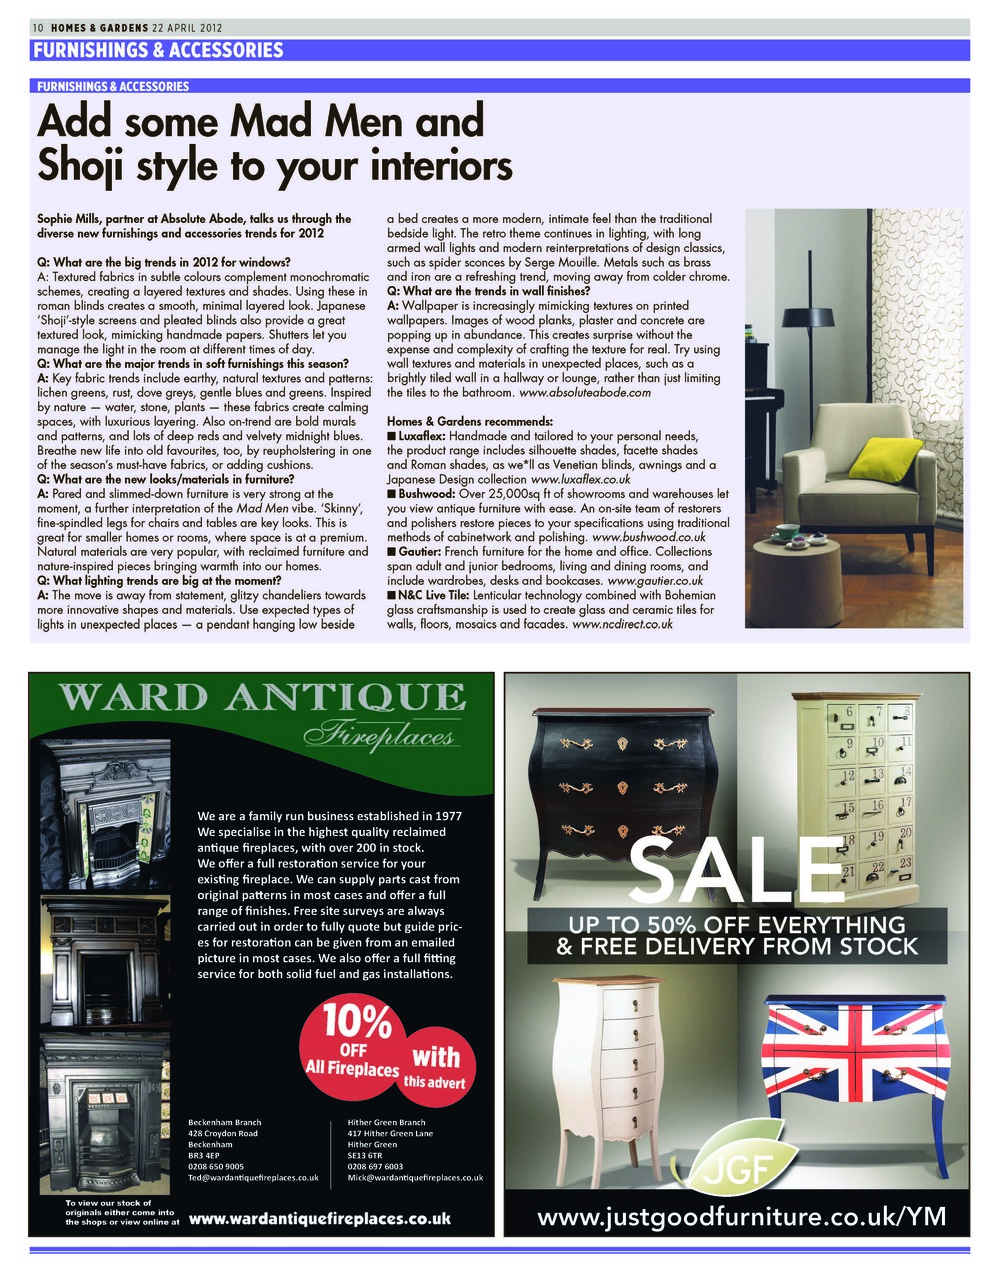 Mail on Sunday Design Trends_Page_2.jpg